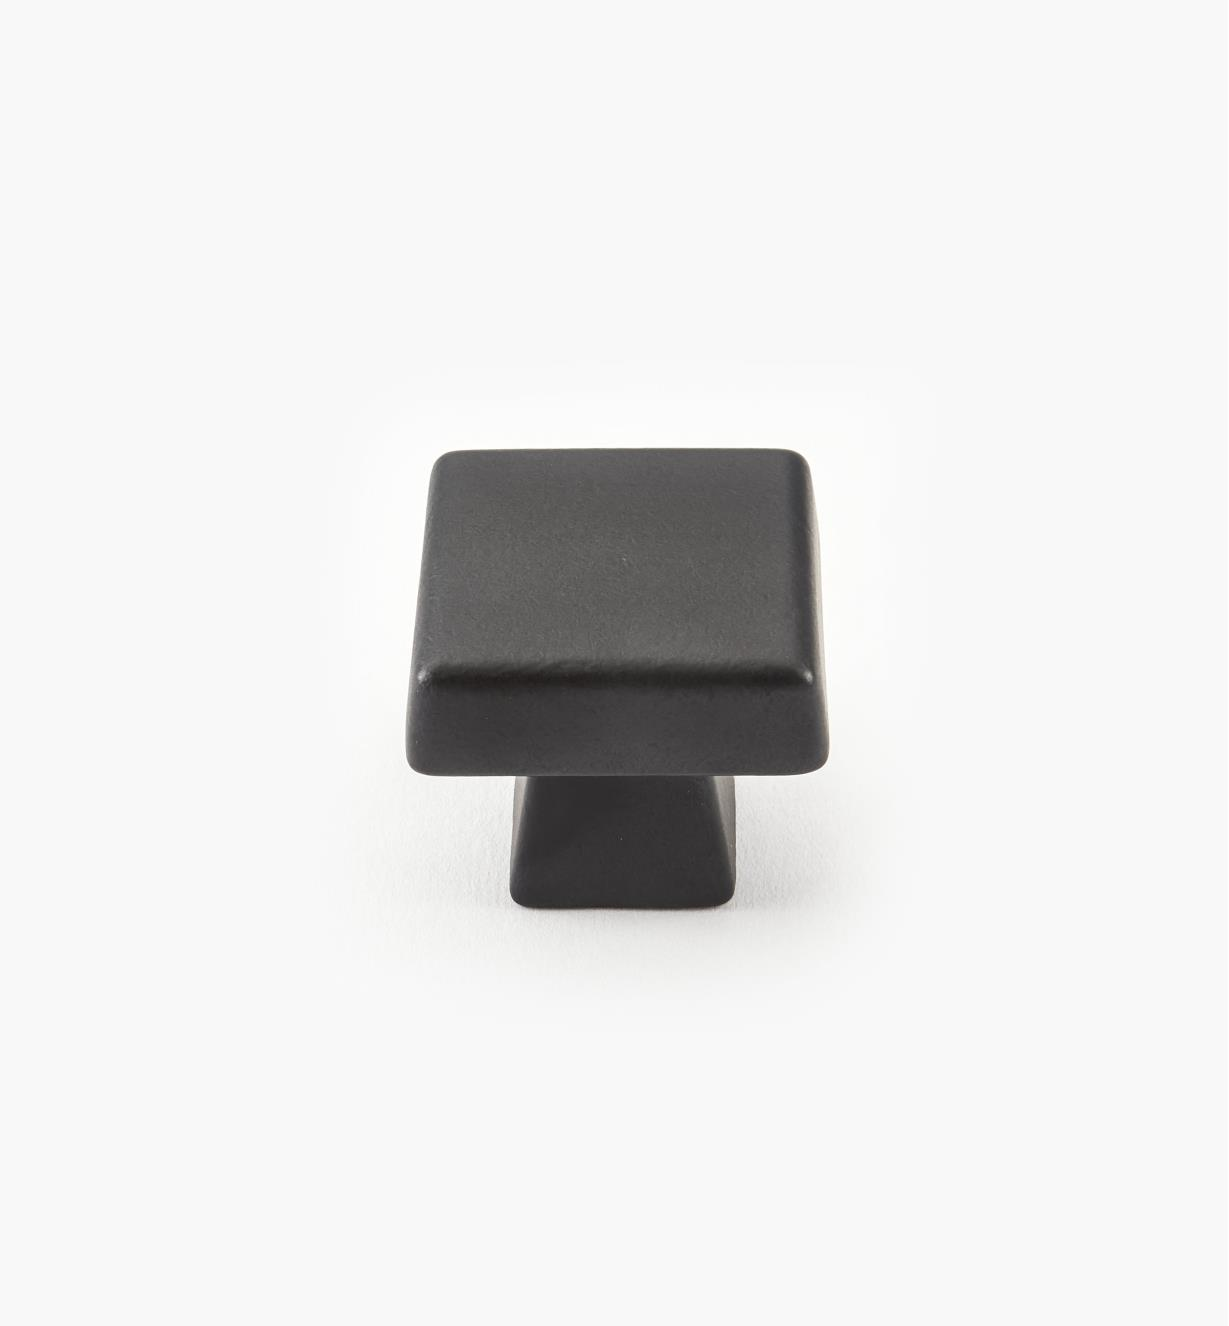 "02A1763 - Blackrock Black Bronze Square Knob, 1 3/8"" x 1 3/8"", each"